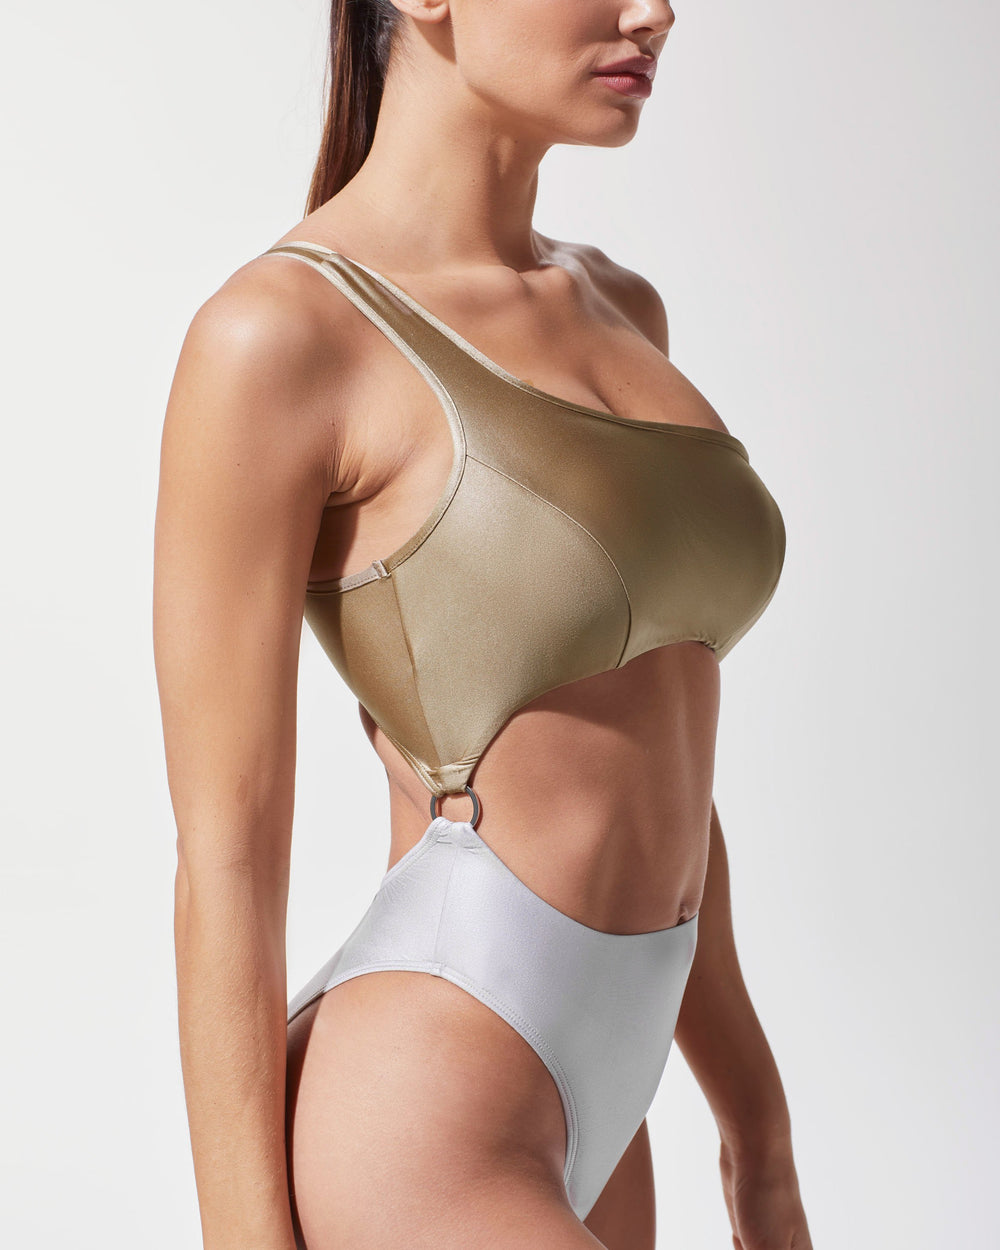 Hydra Bathing Suit - Golden/Platinum